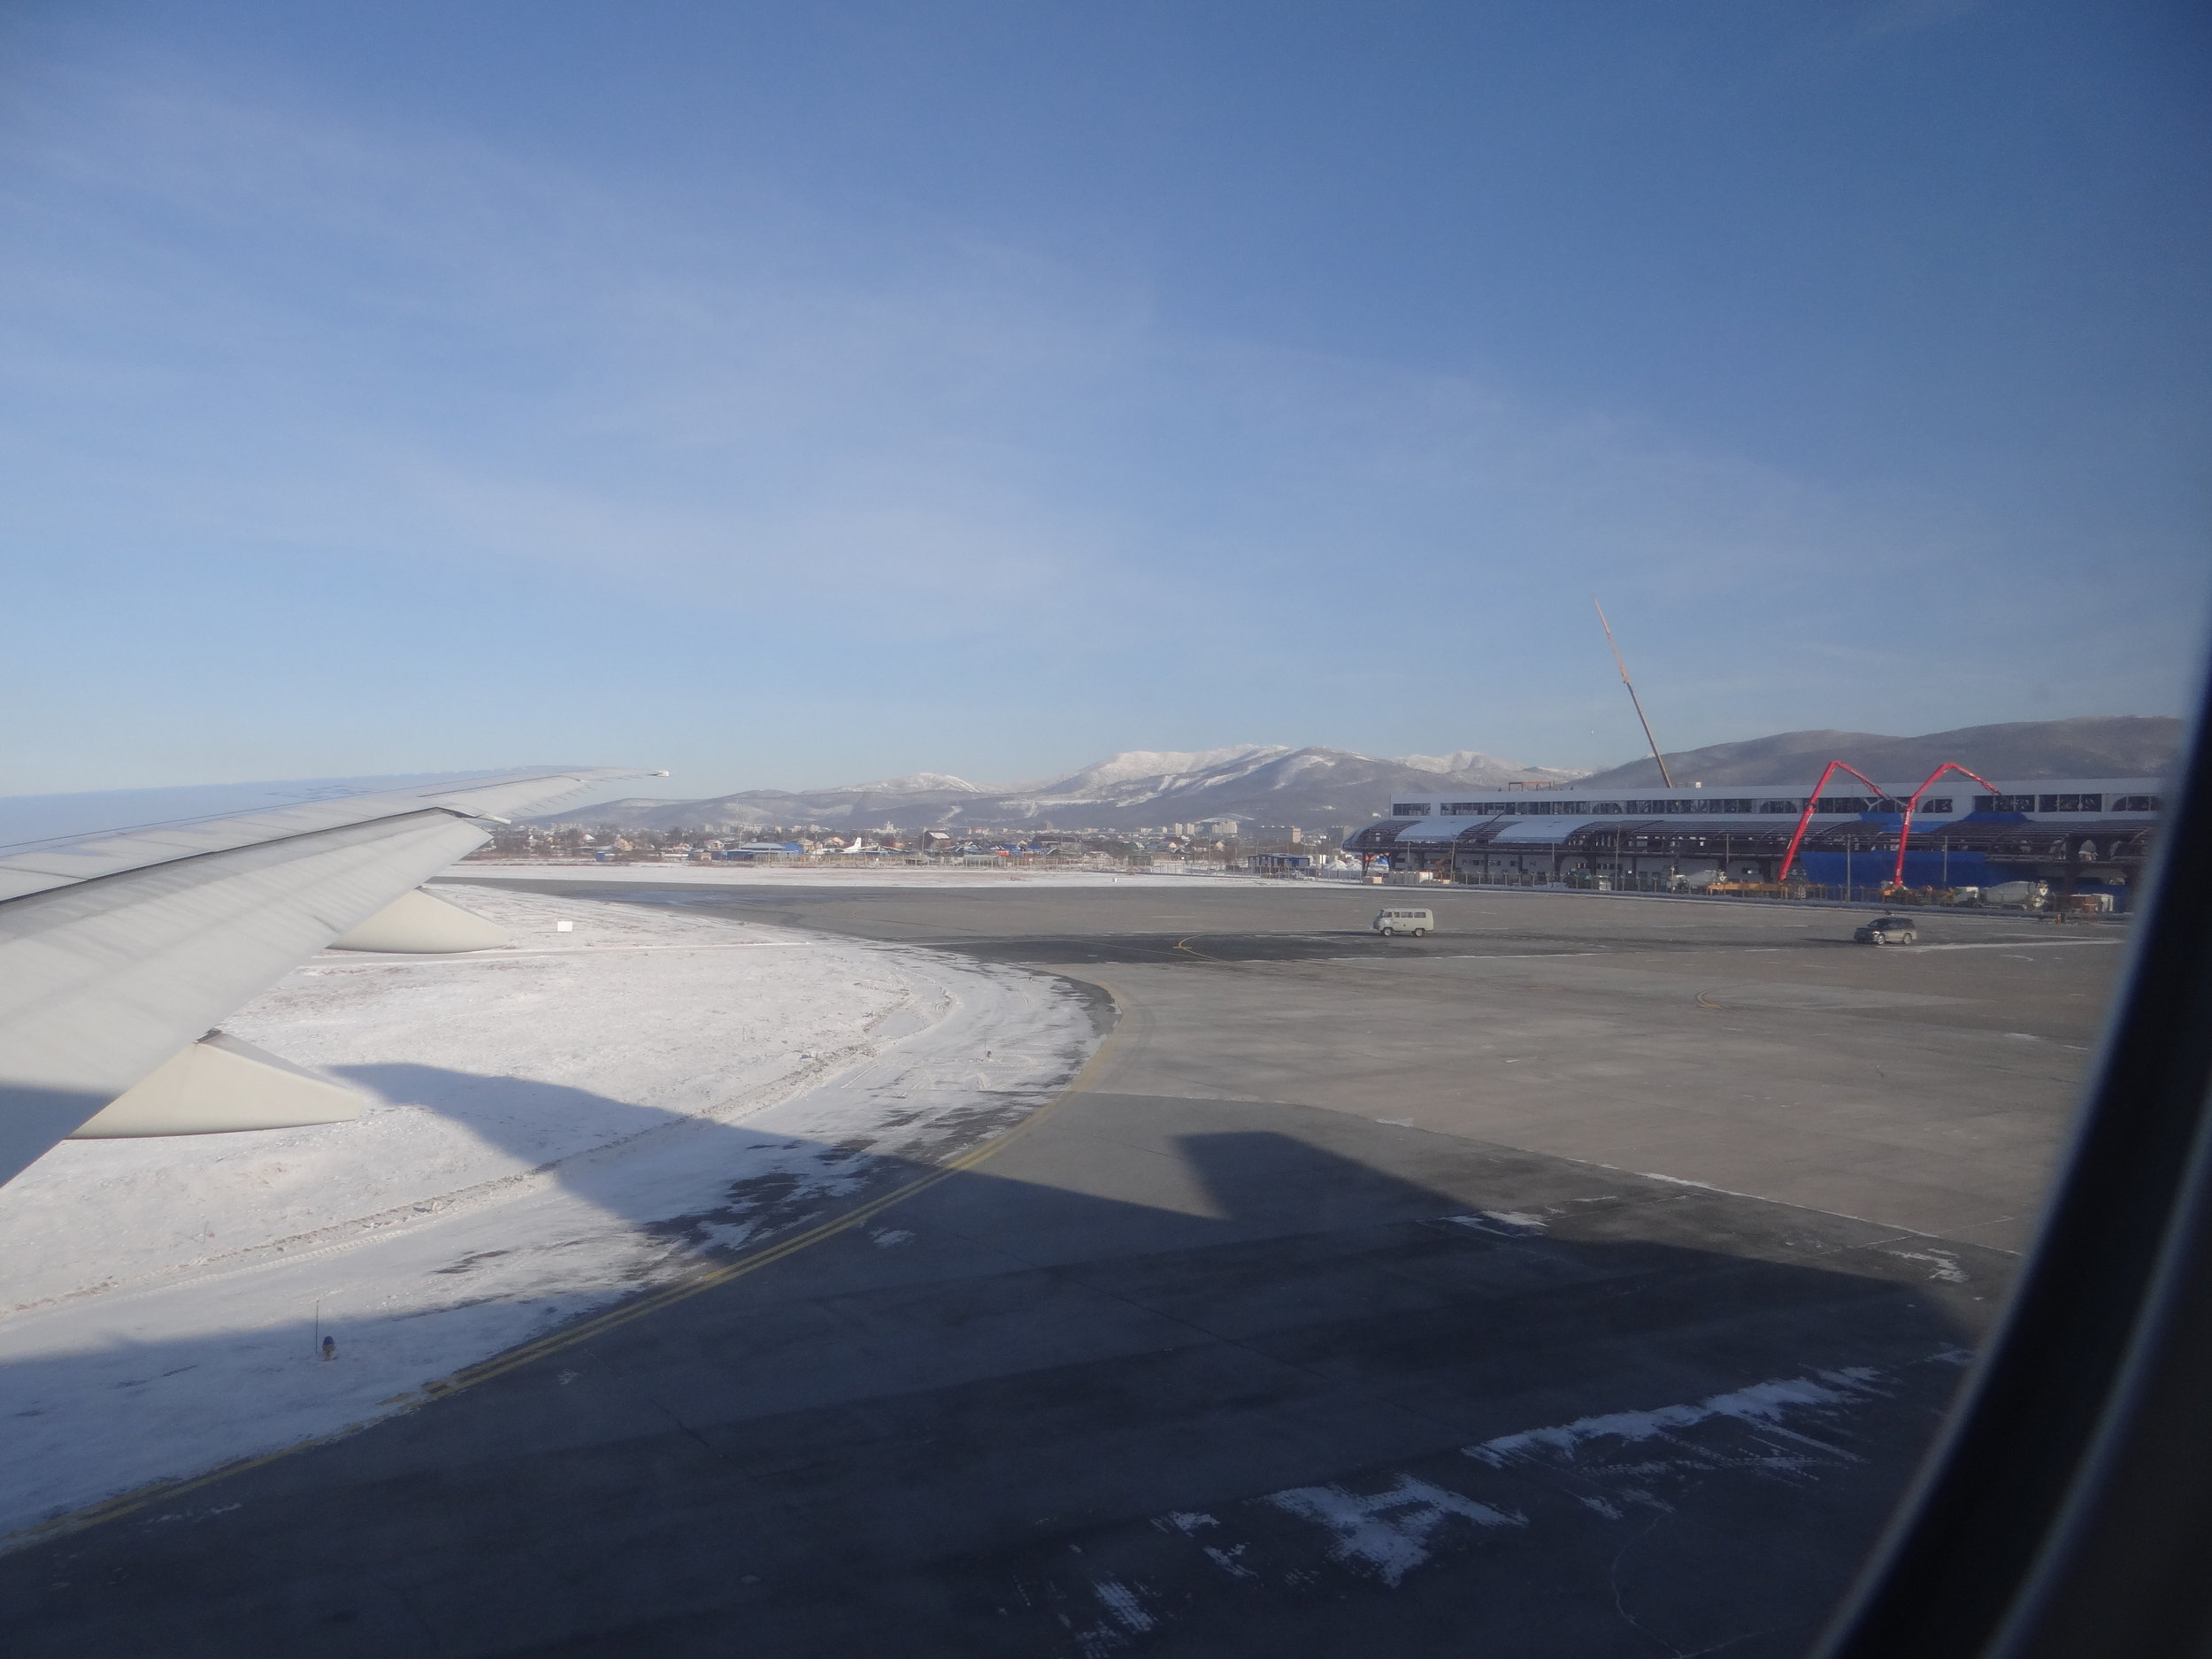 Window view of Yuzhno-Sakhalinsk airport, with the new terminal, under construction, clearly visible